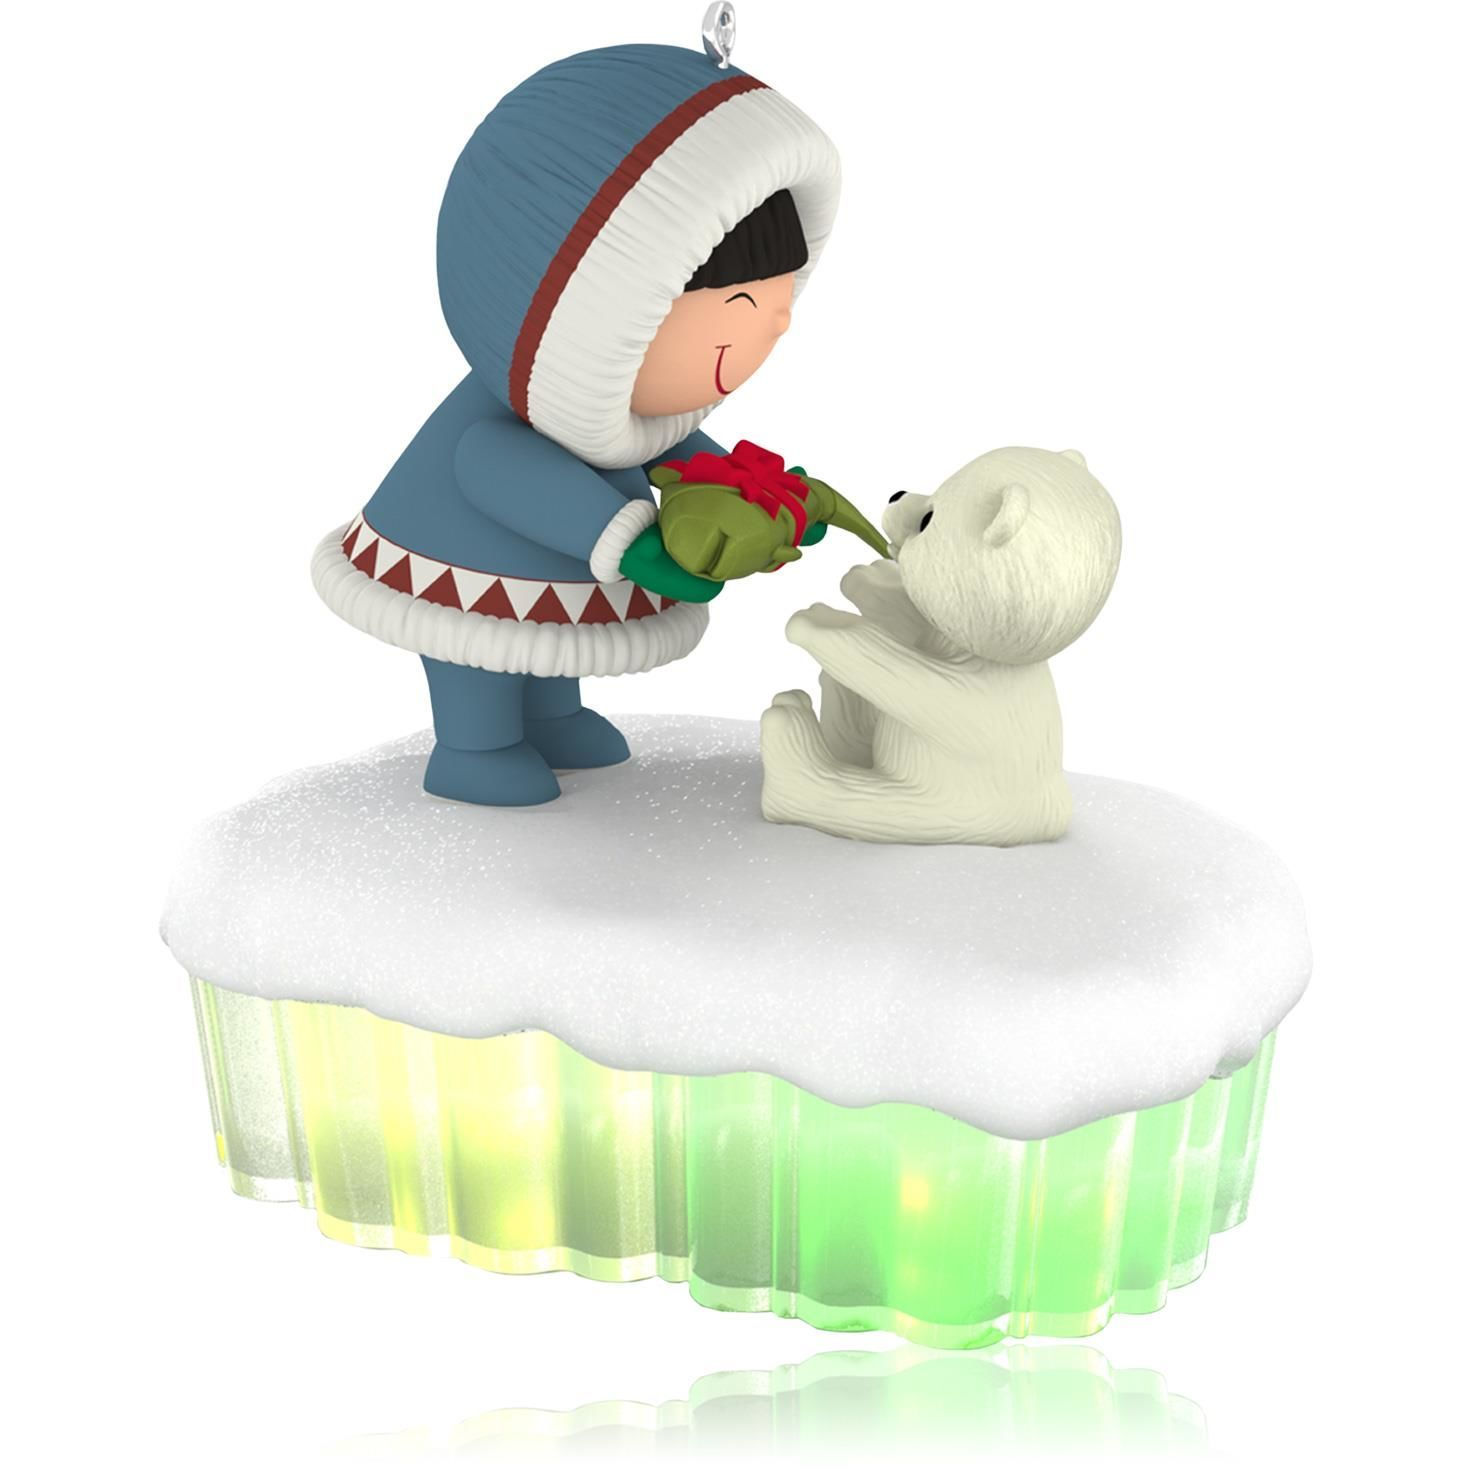 Frosty Friends Ice Totem Pole Carving Ornament | Ornament and ...